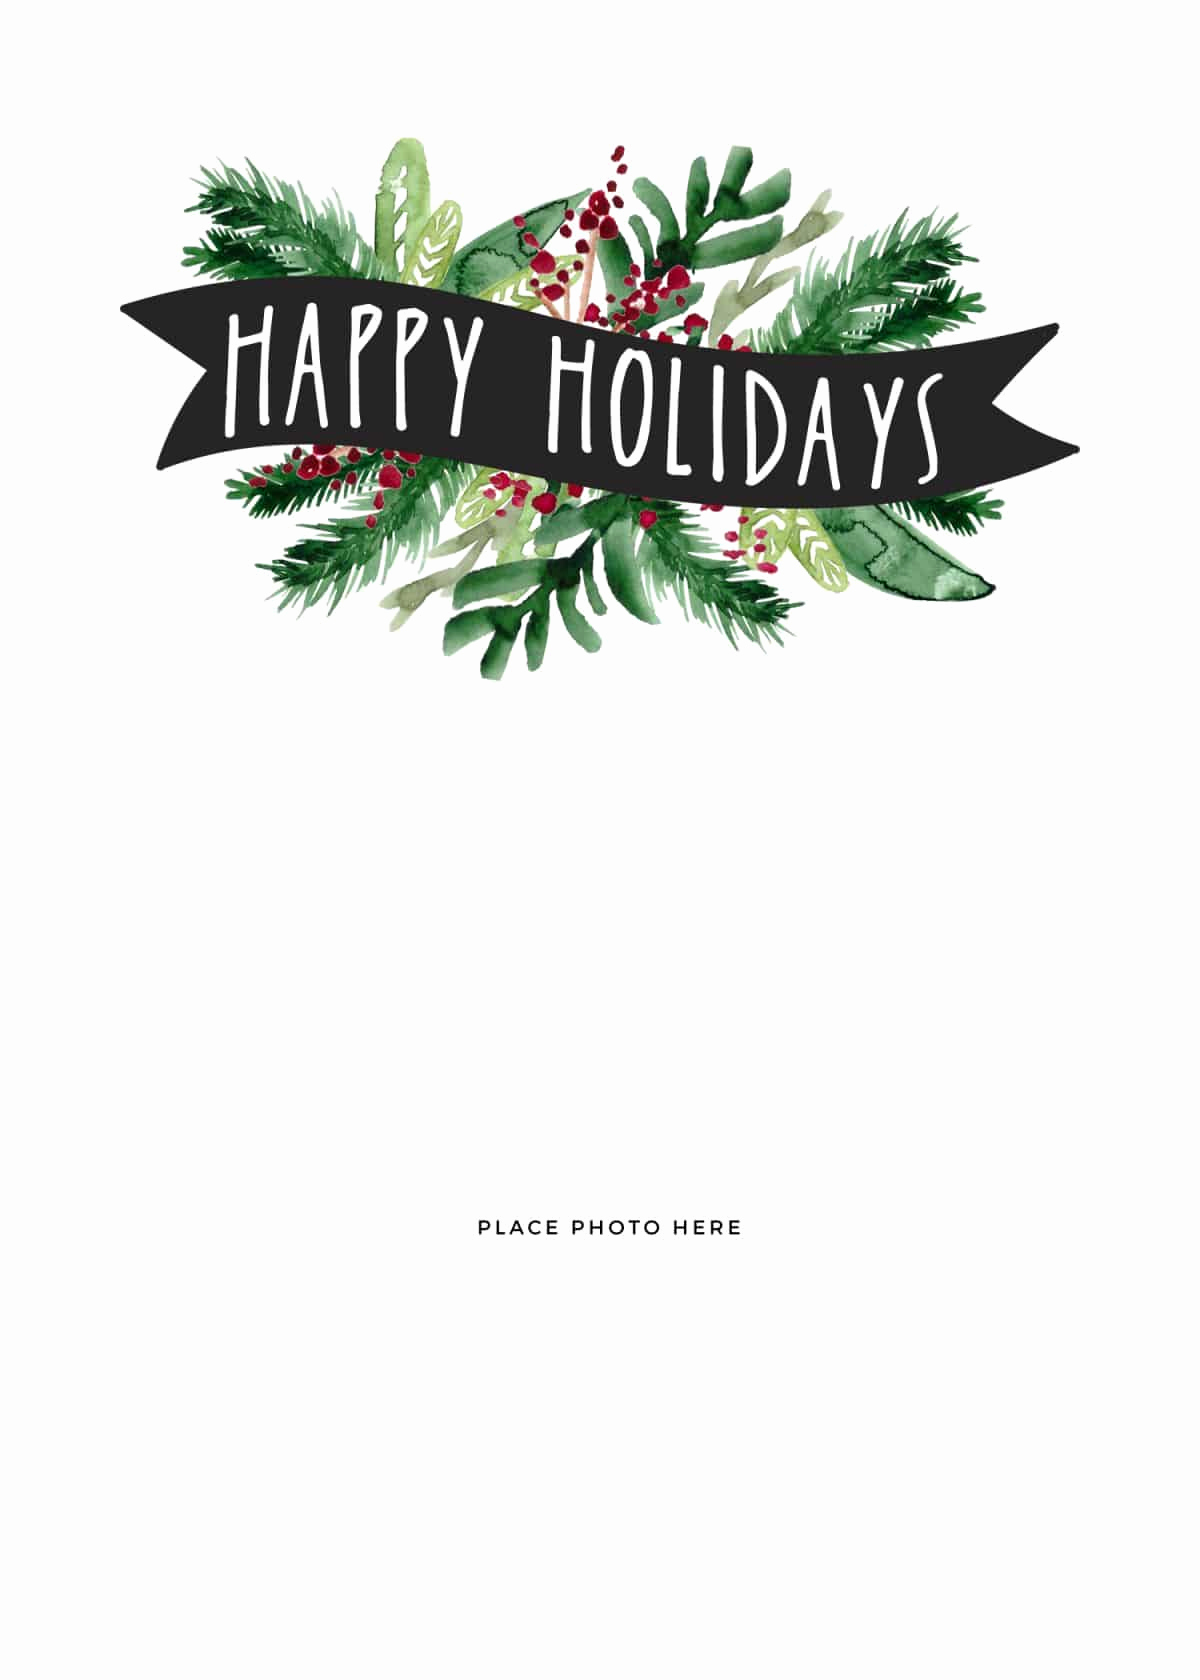 Free Printable Photo Cards Templates Unique Make Your Own Christmas Cards for Free somewhat